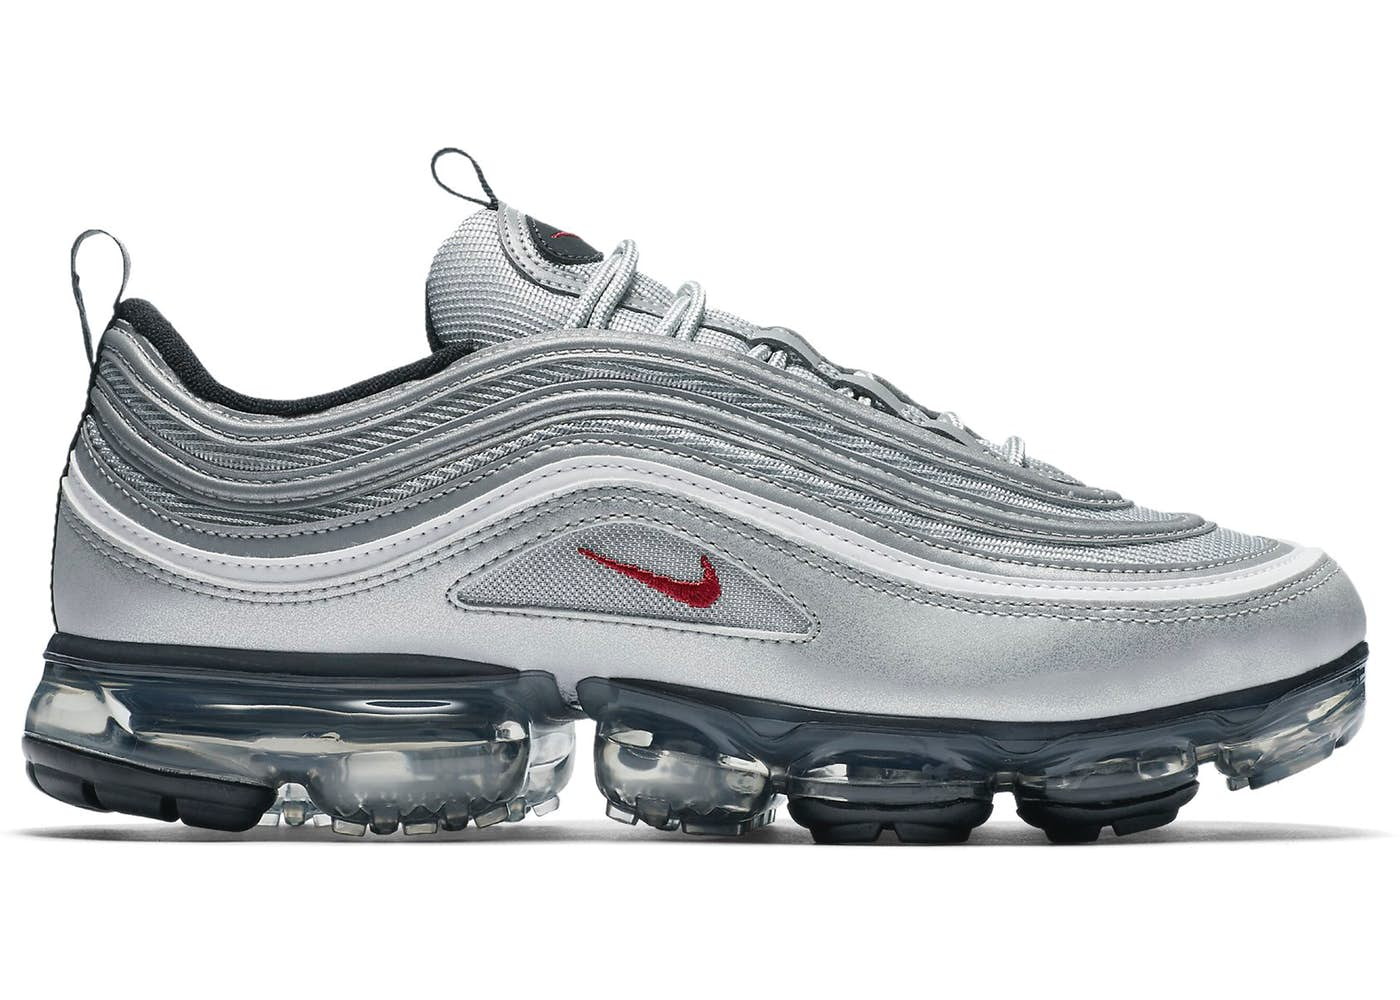 air vapormax 97 silver bullet release date apr 12 2018. Black Bedroom Furniture Sets. Home Design Ideas